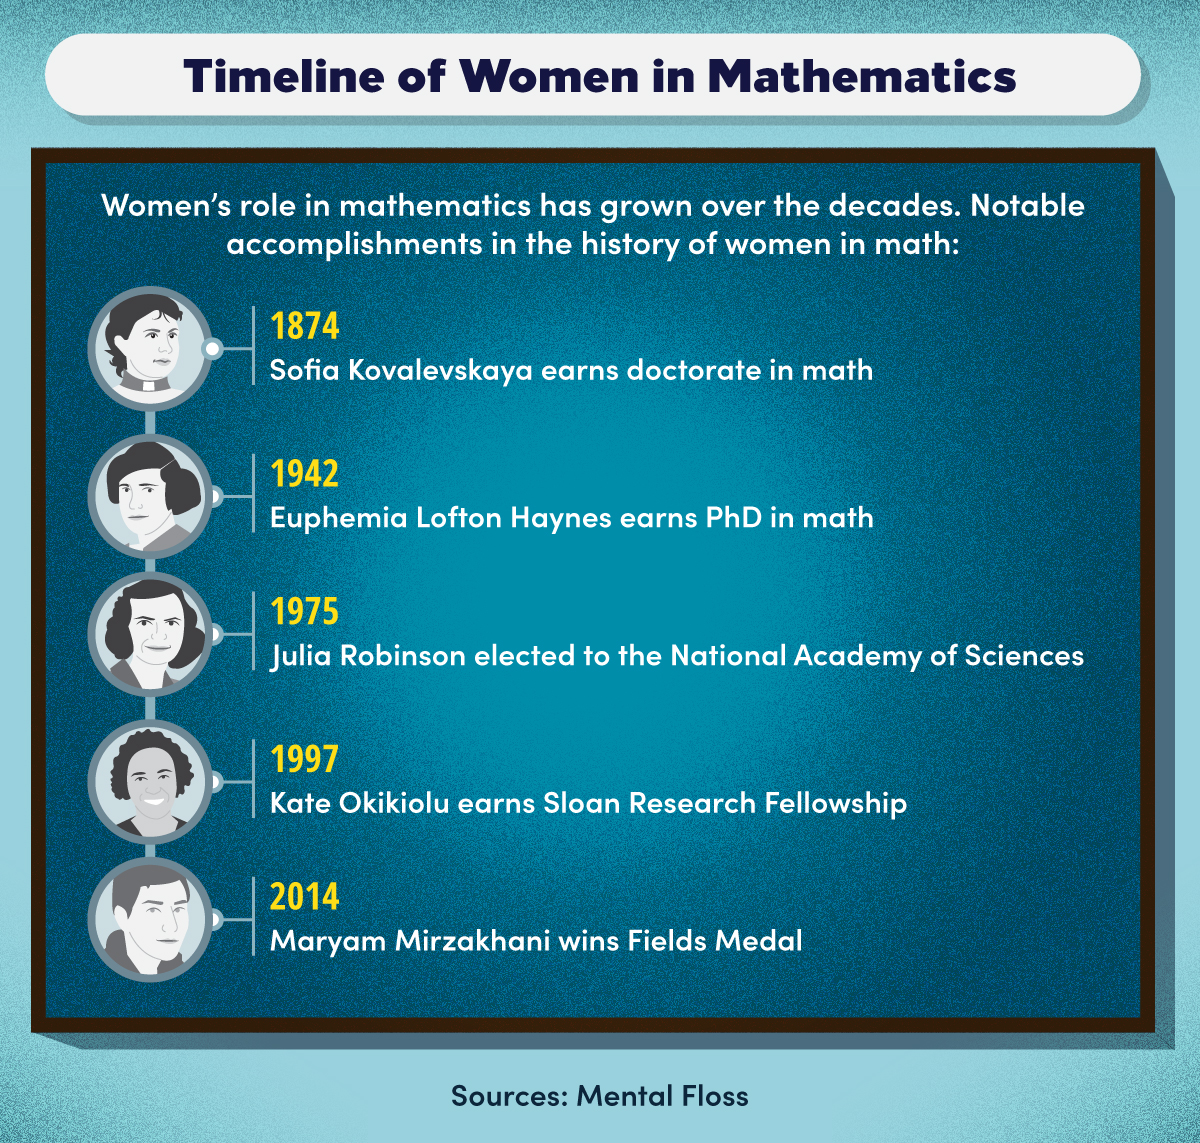 Women have made notable accomplishments in mathematics throughout history.